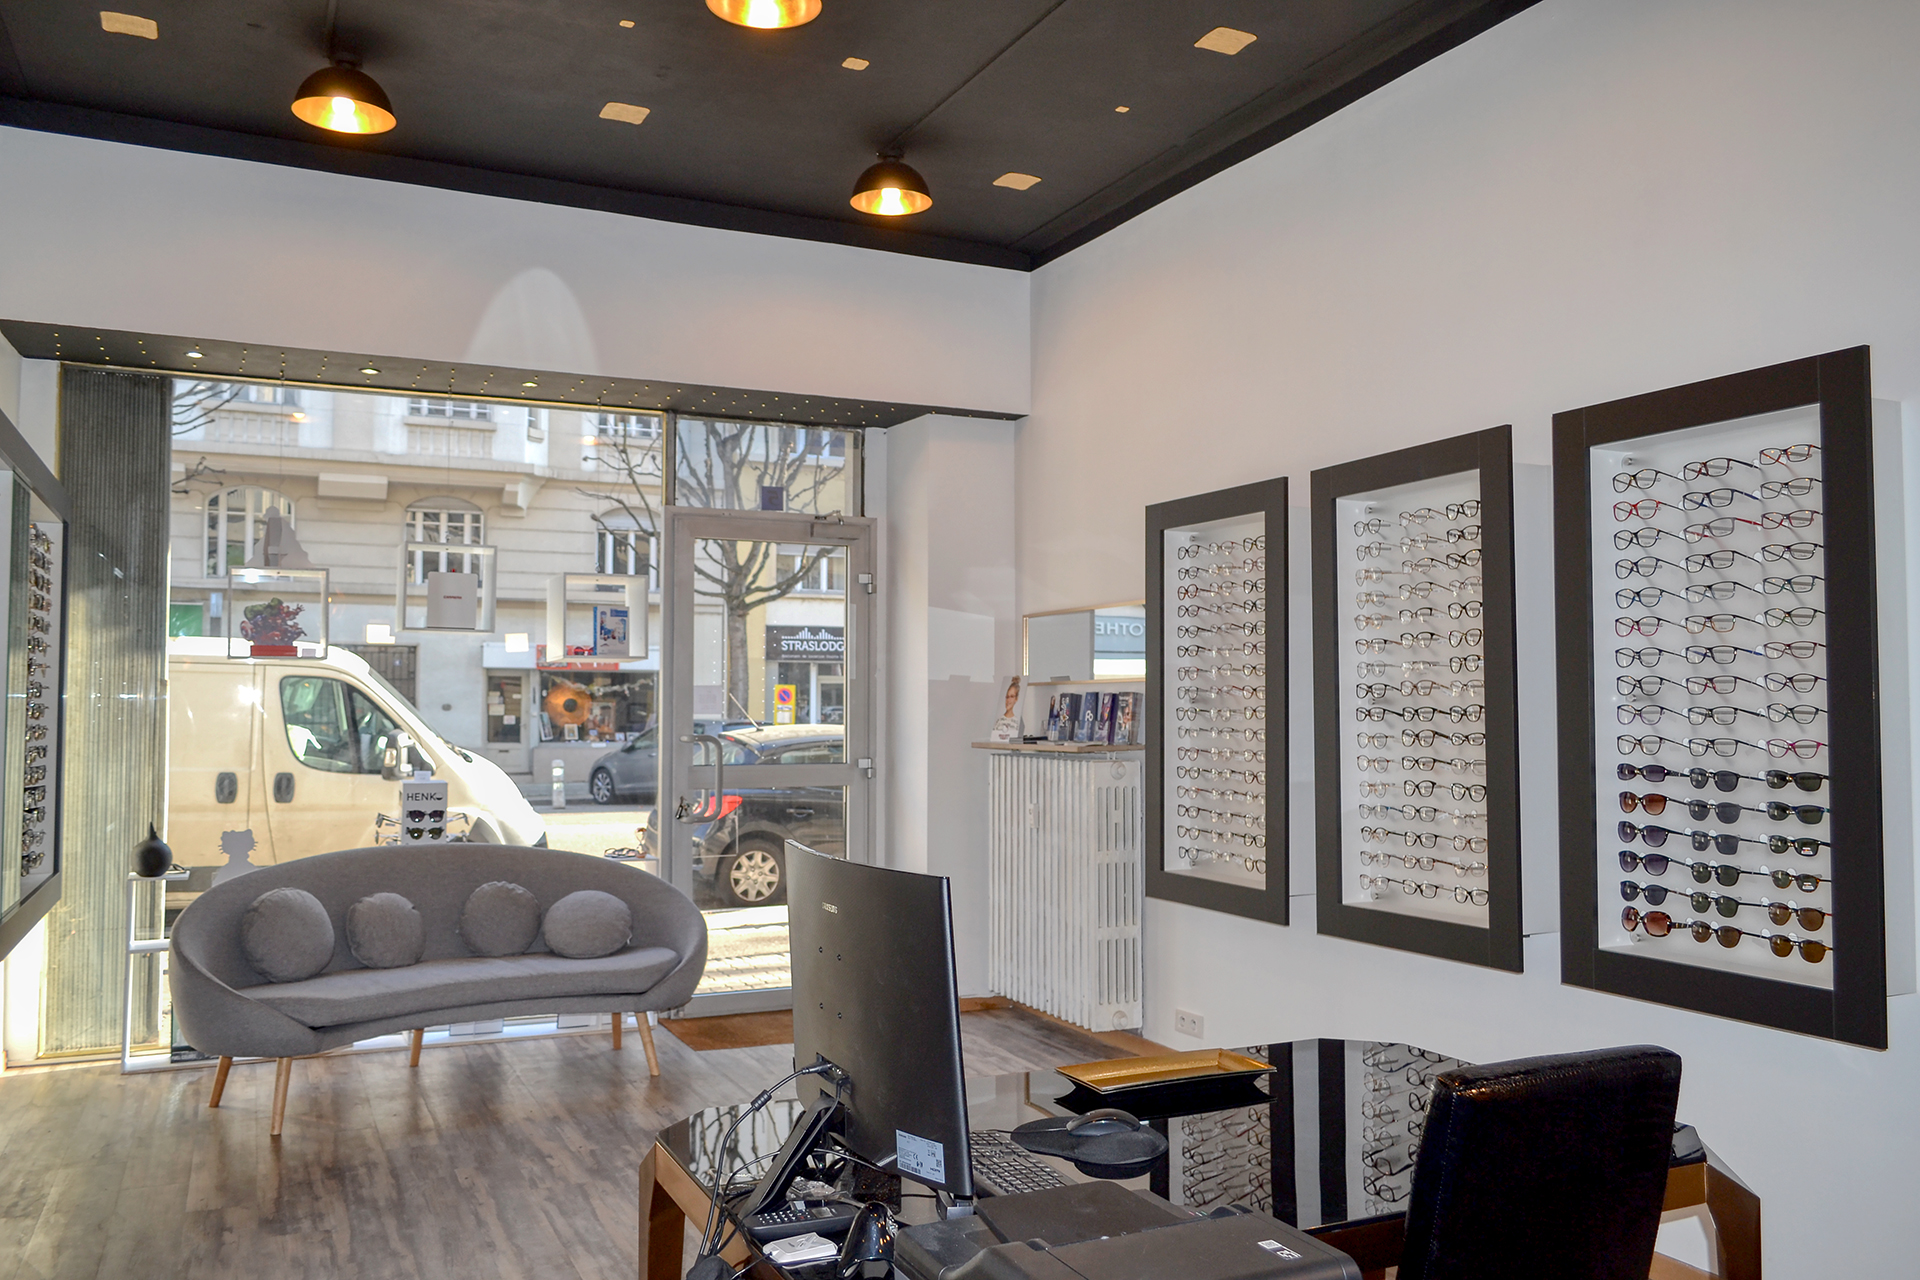 Opticien : OPTIC PREMIER REGARD, 5 RUE DU TRAVAIL, 67000 STRASBOURG